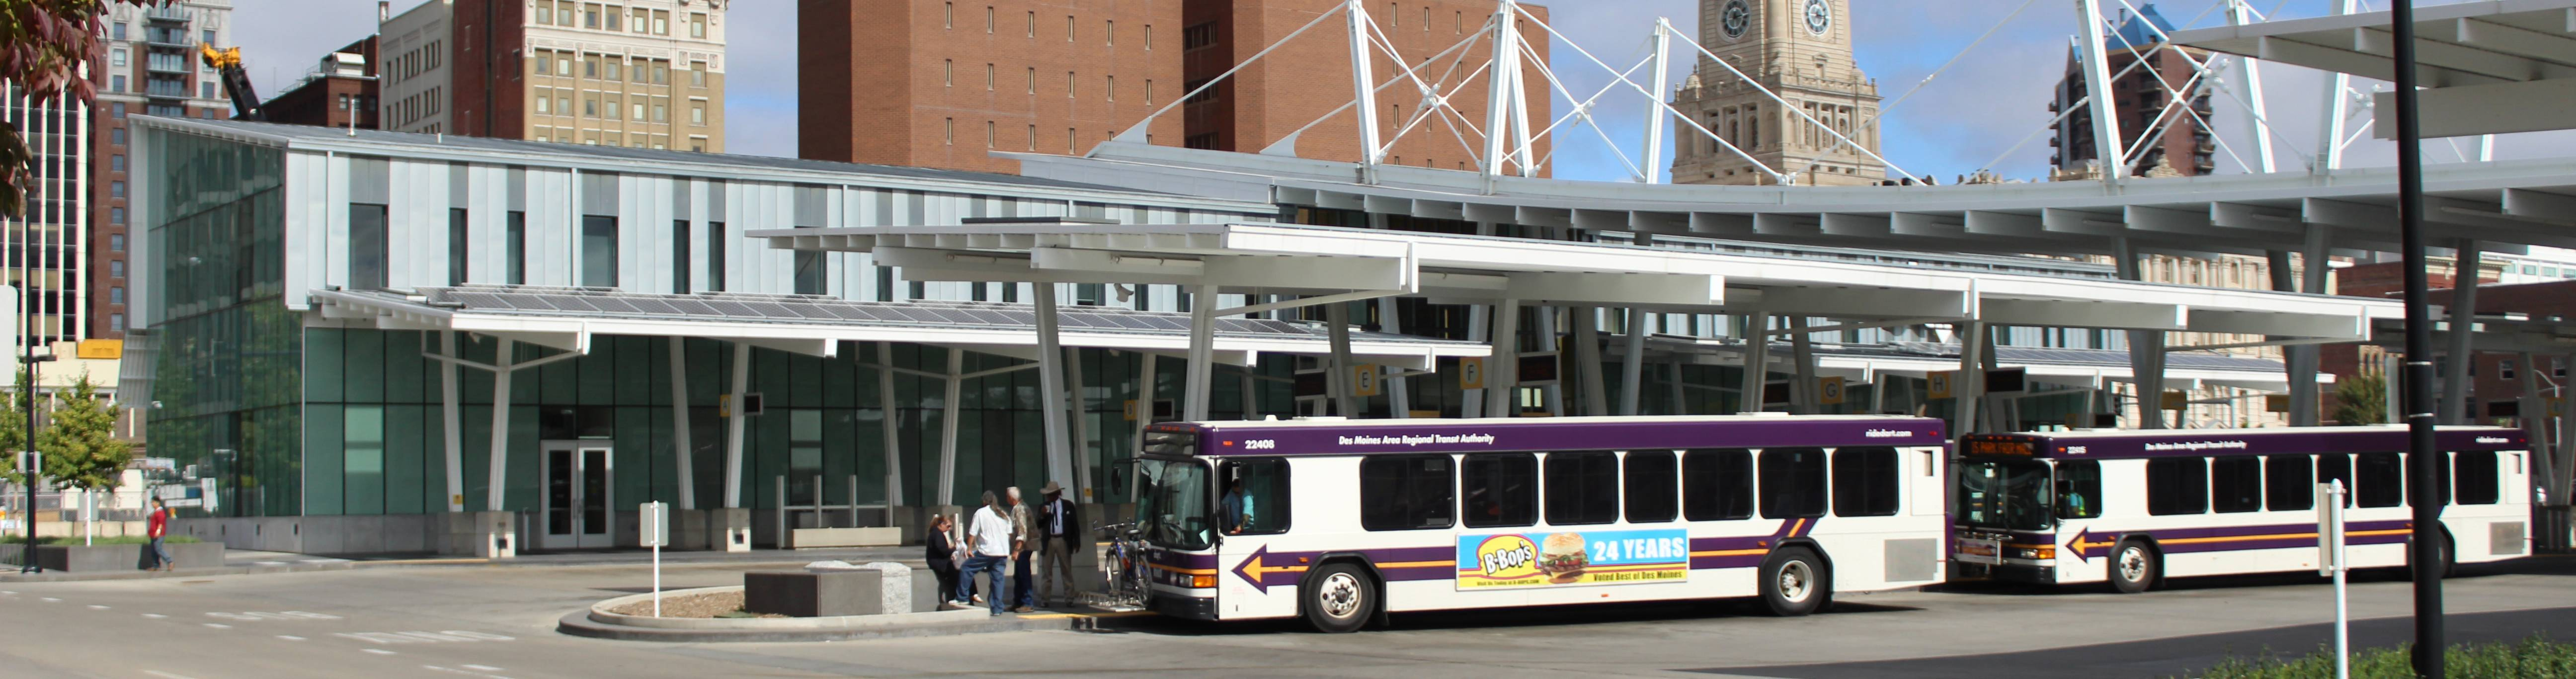 Service change impacting Routes 6 and 16 begins Sunday, June 4